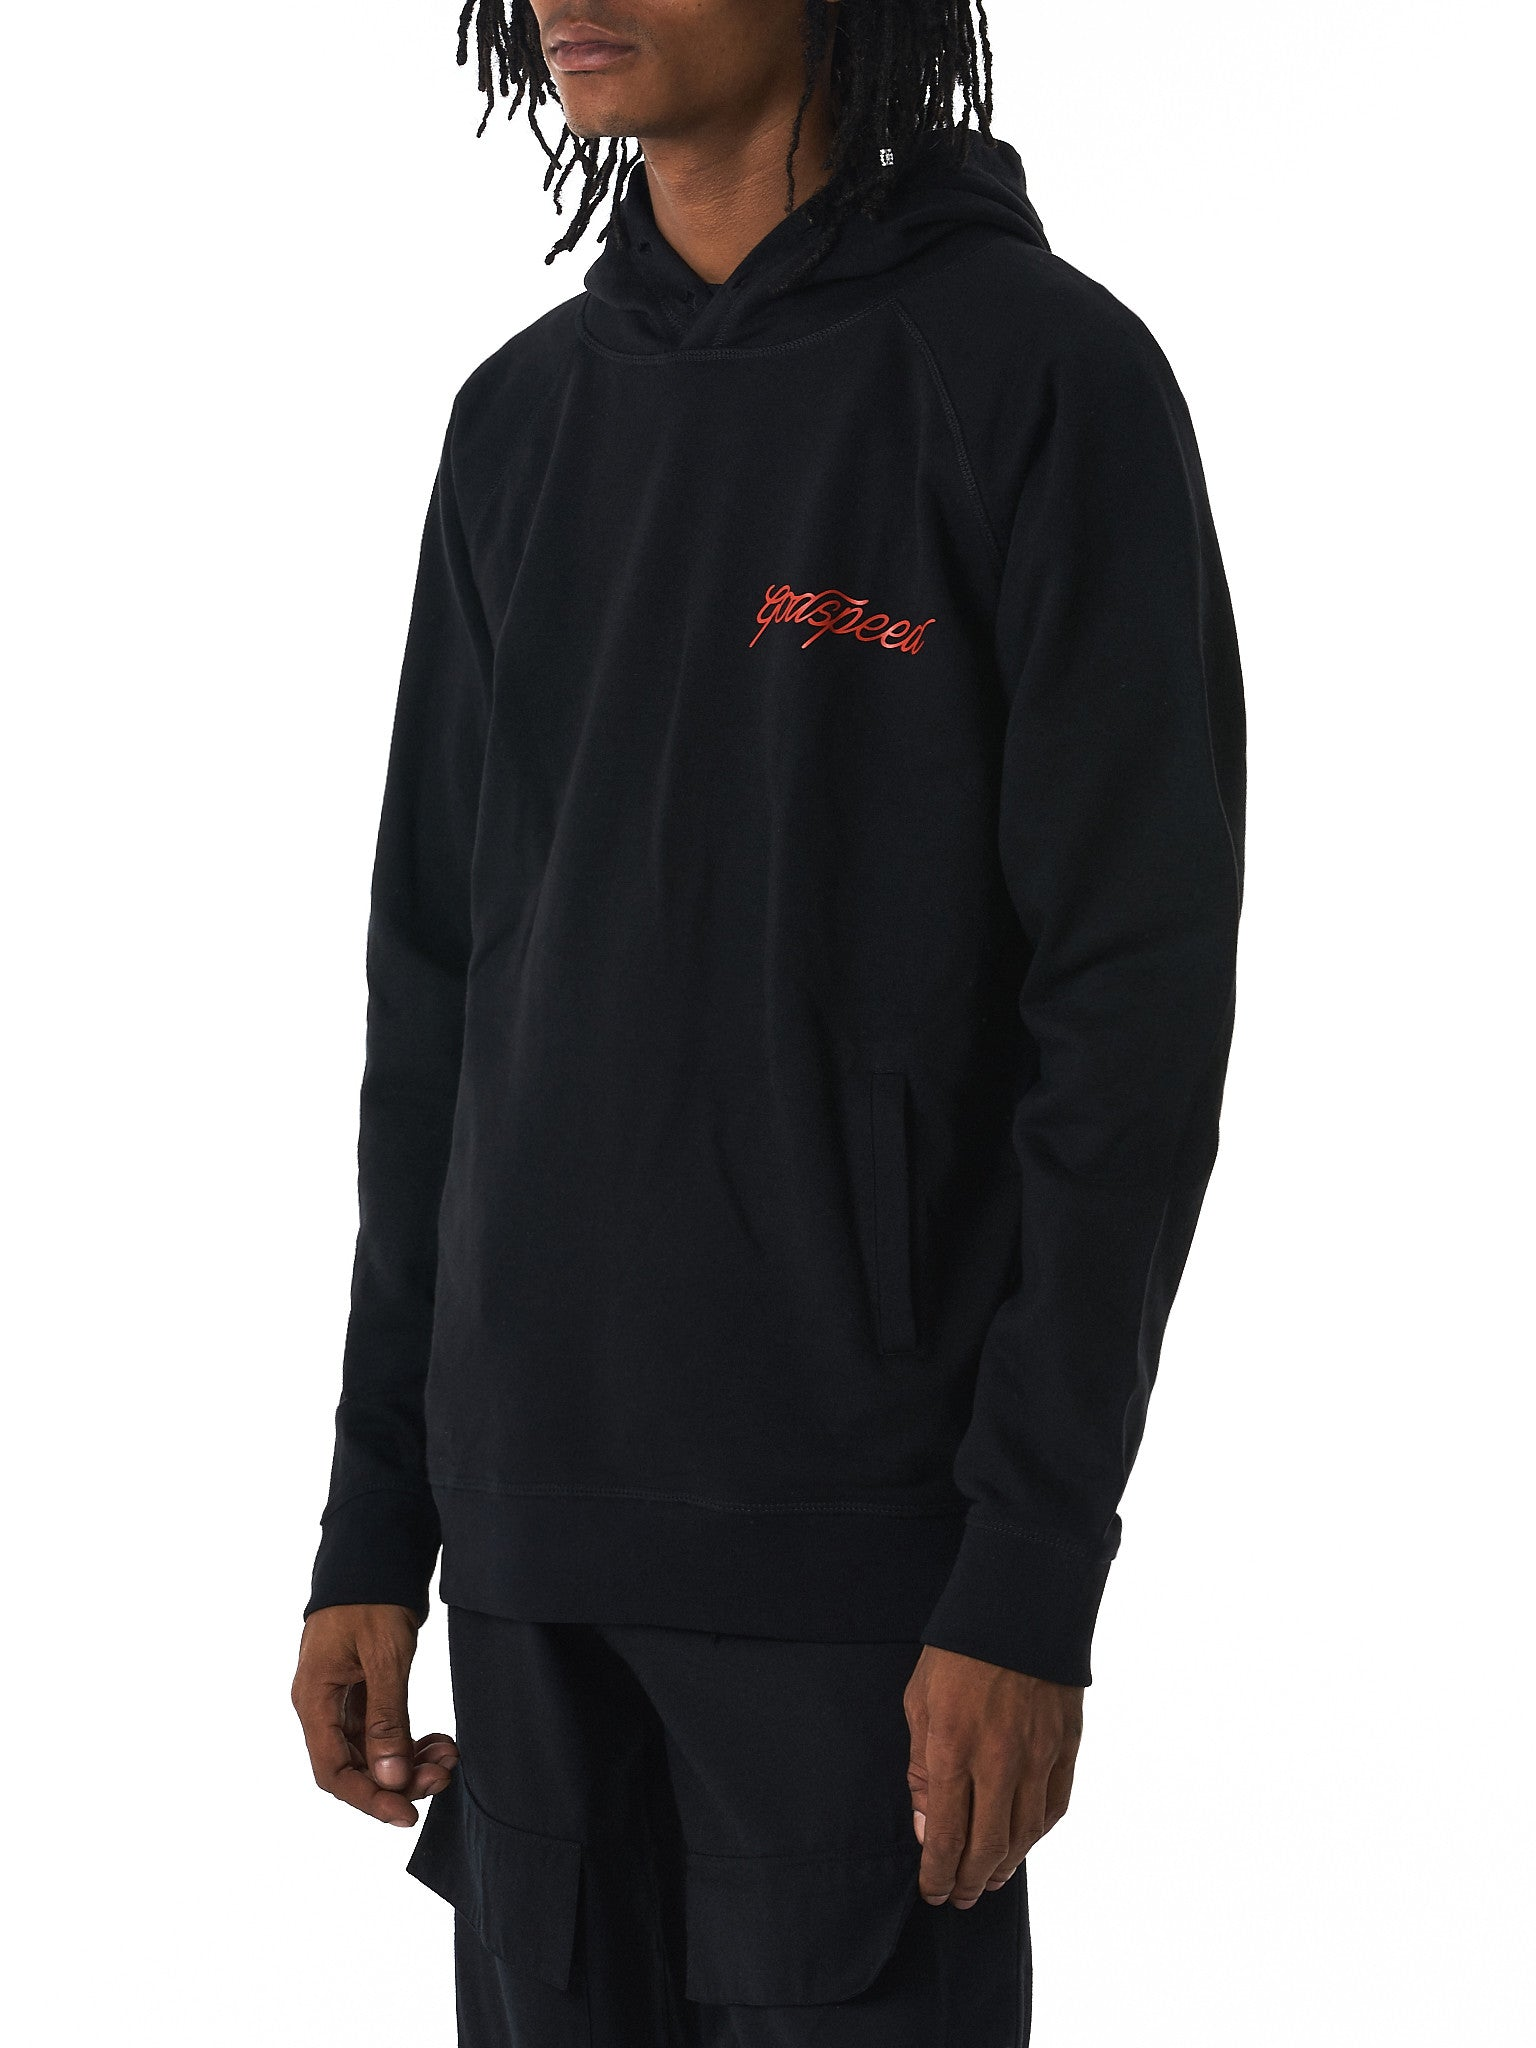 GEO 'Godspeed' hooded sweater hlorenzo side view